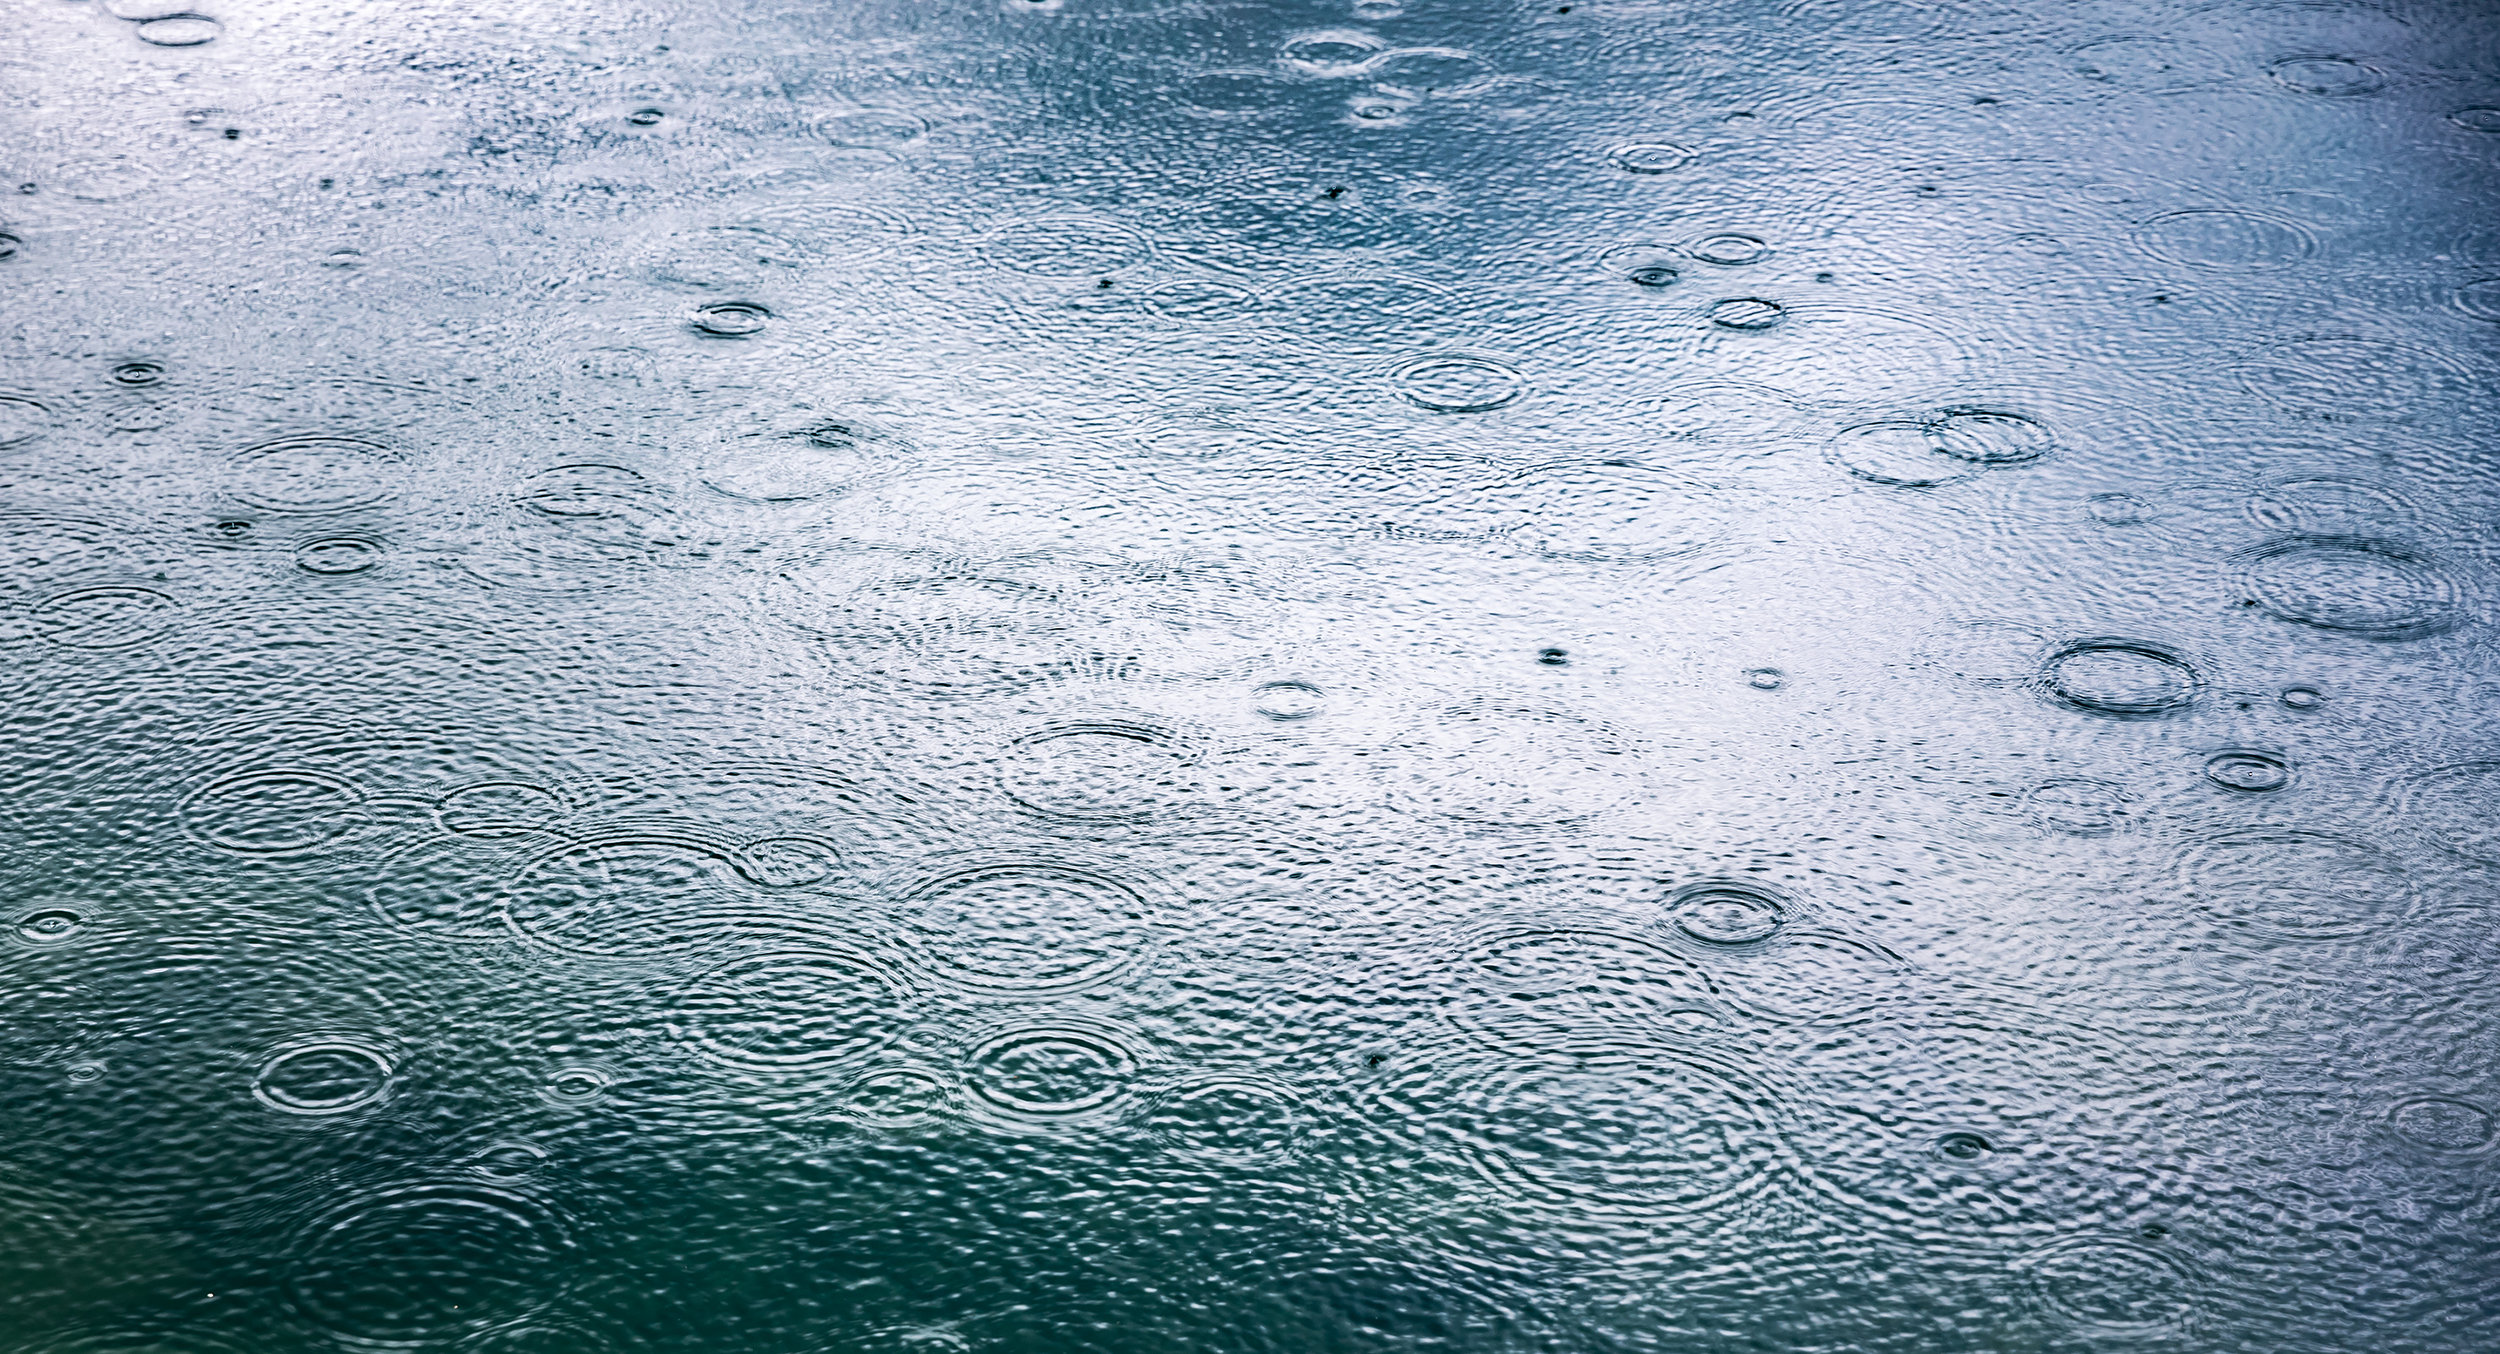 abstract-background-rain-drops-on-the-water-PM5ZA55.jpg